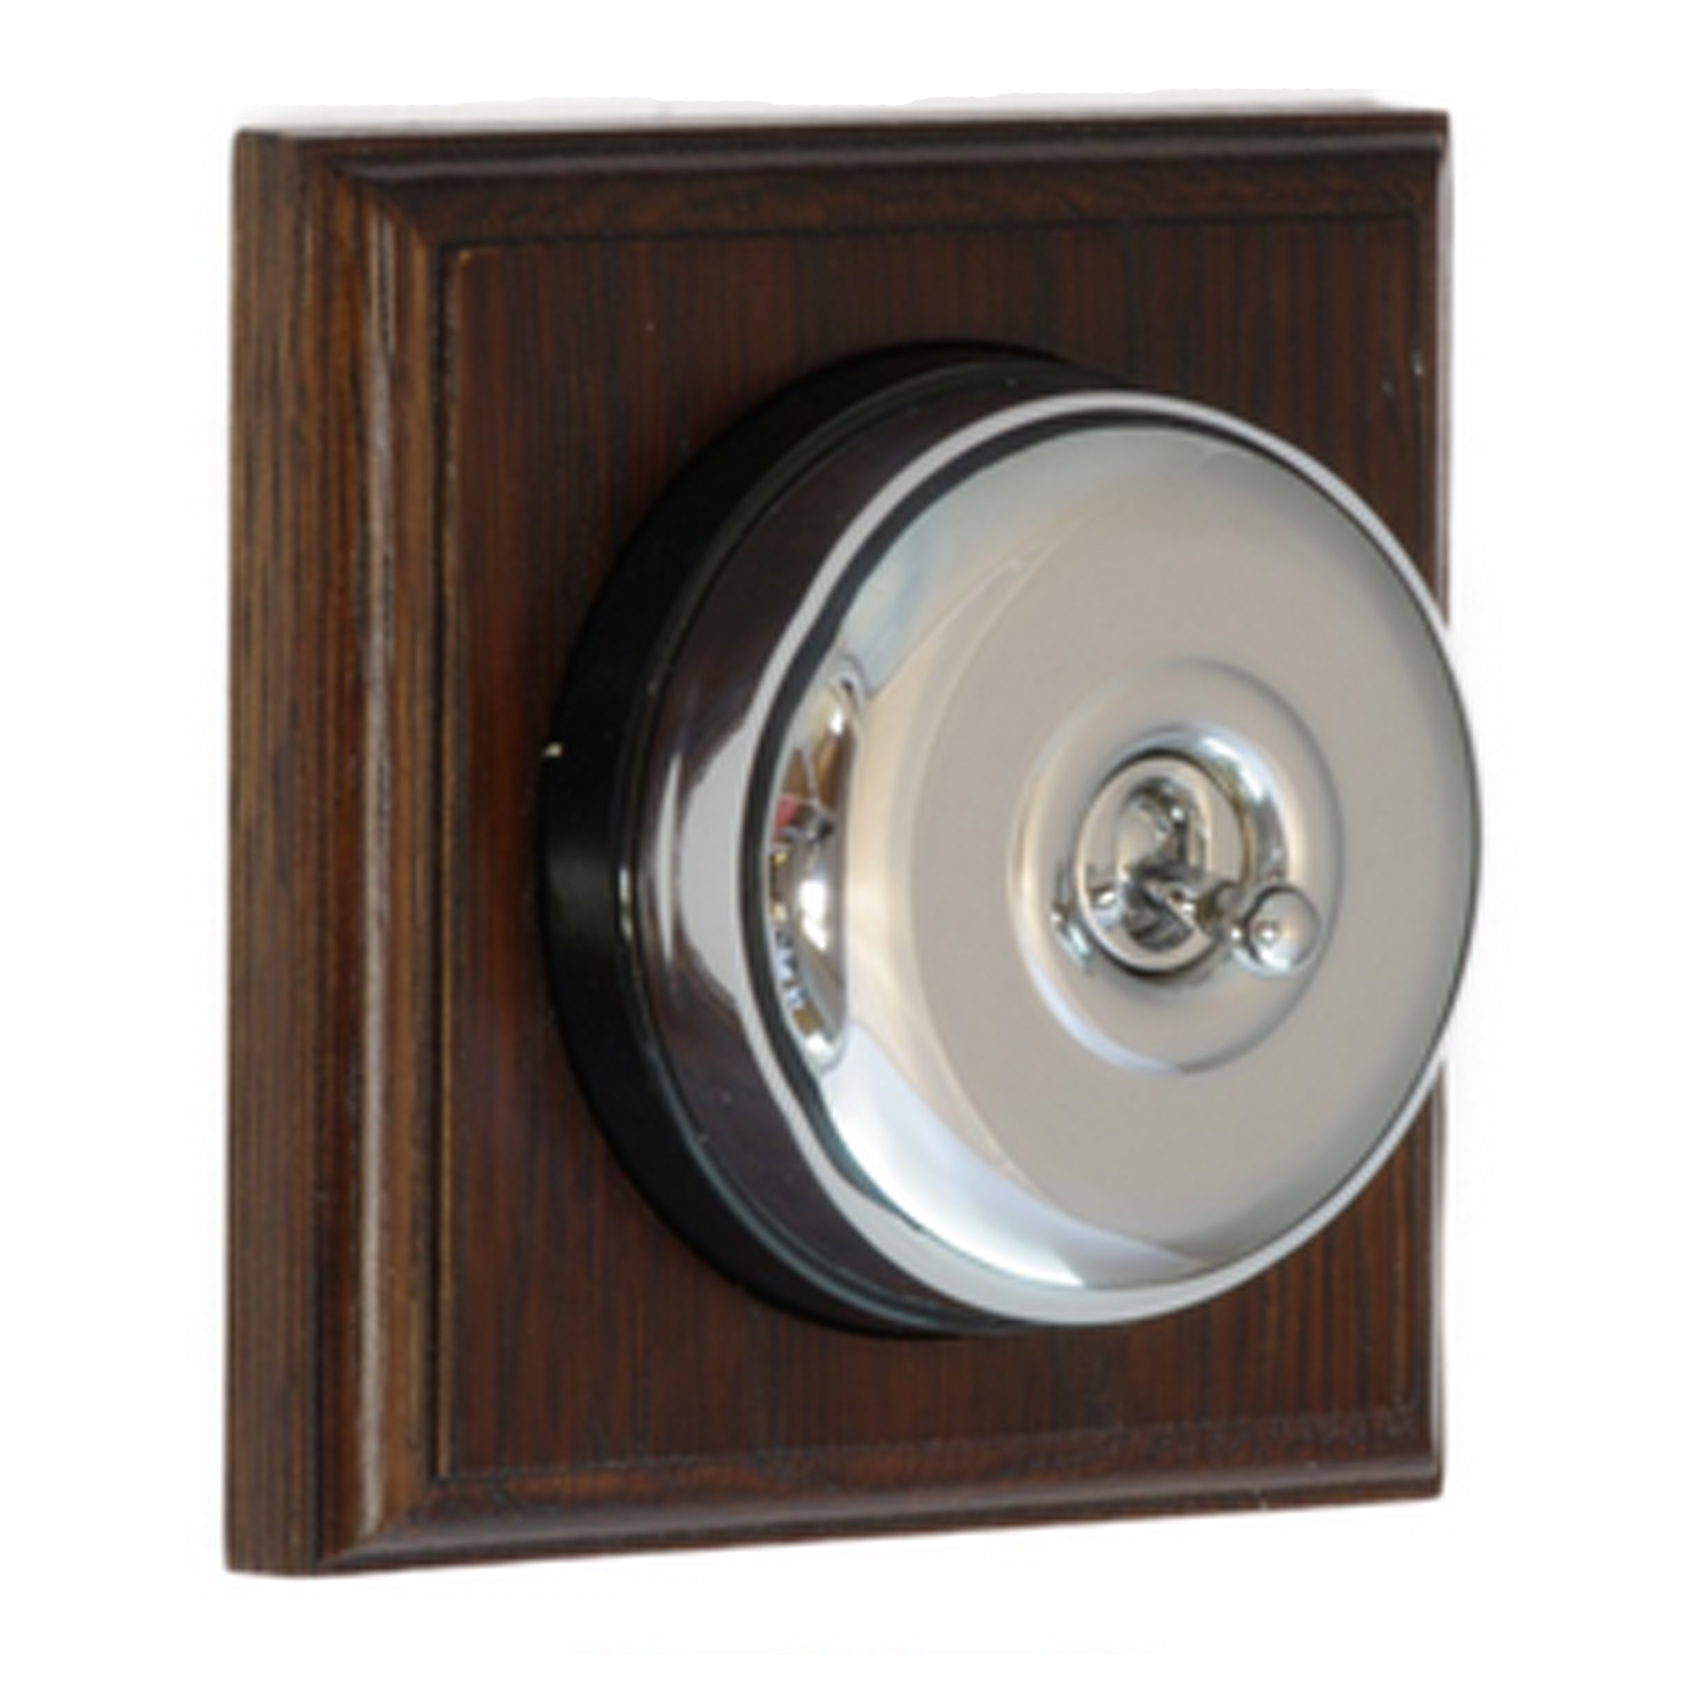 Chrome Domed Light Switch